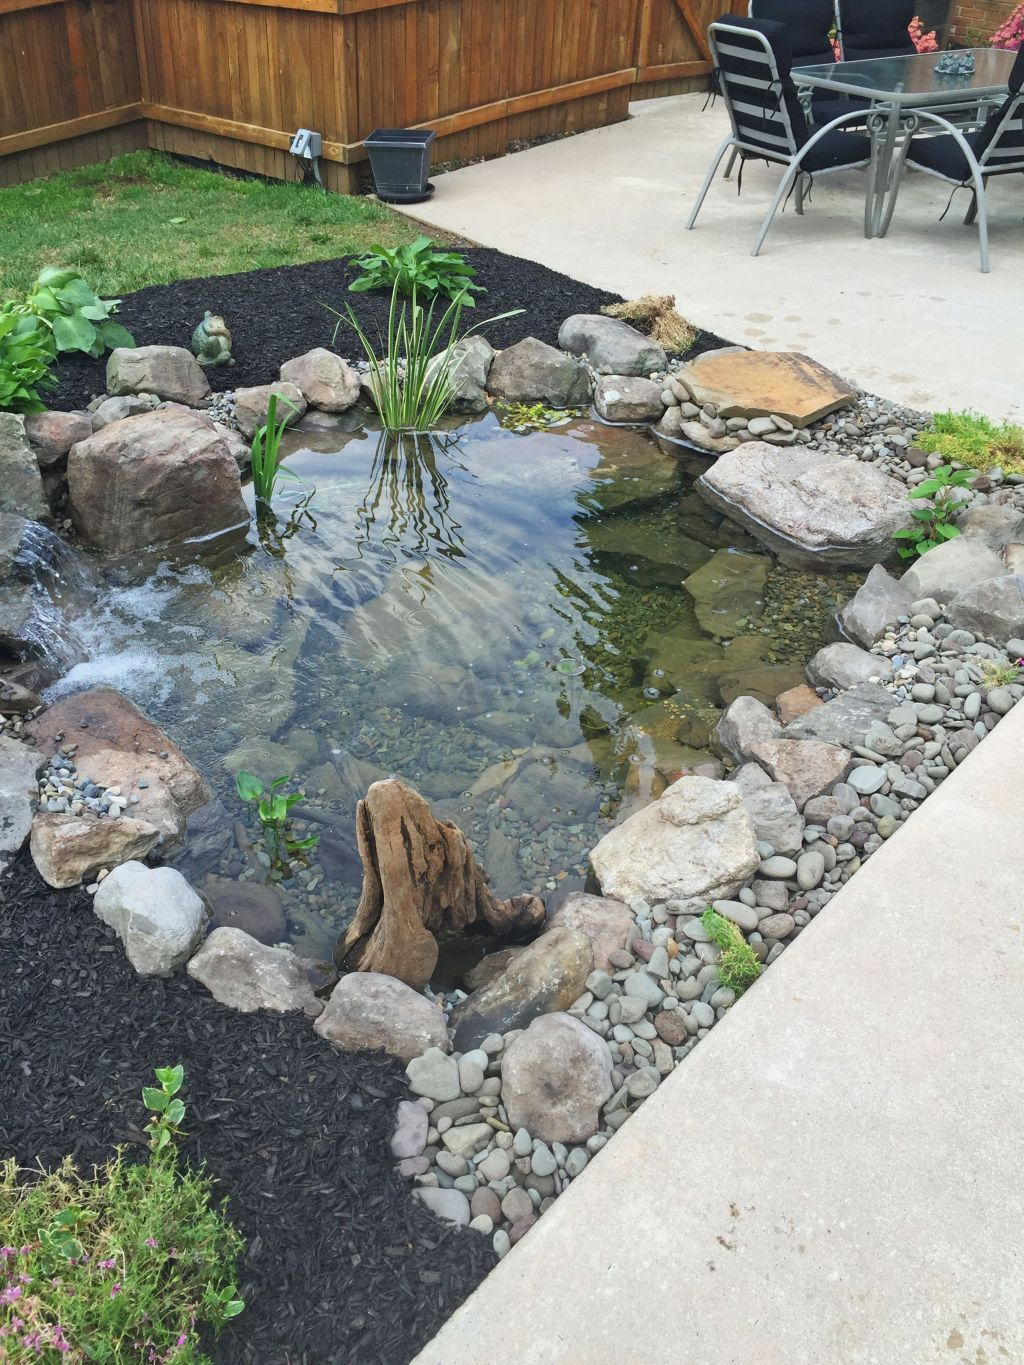 Cute Fish Pond Ideas For Backyard Landscape Ponds Backyard Water Features In The Garden Fish Pond Gardens